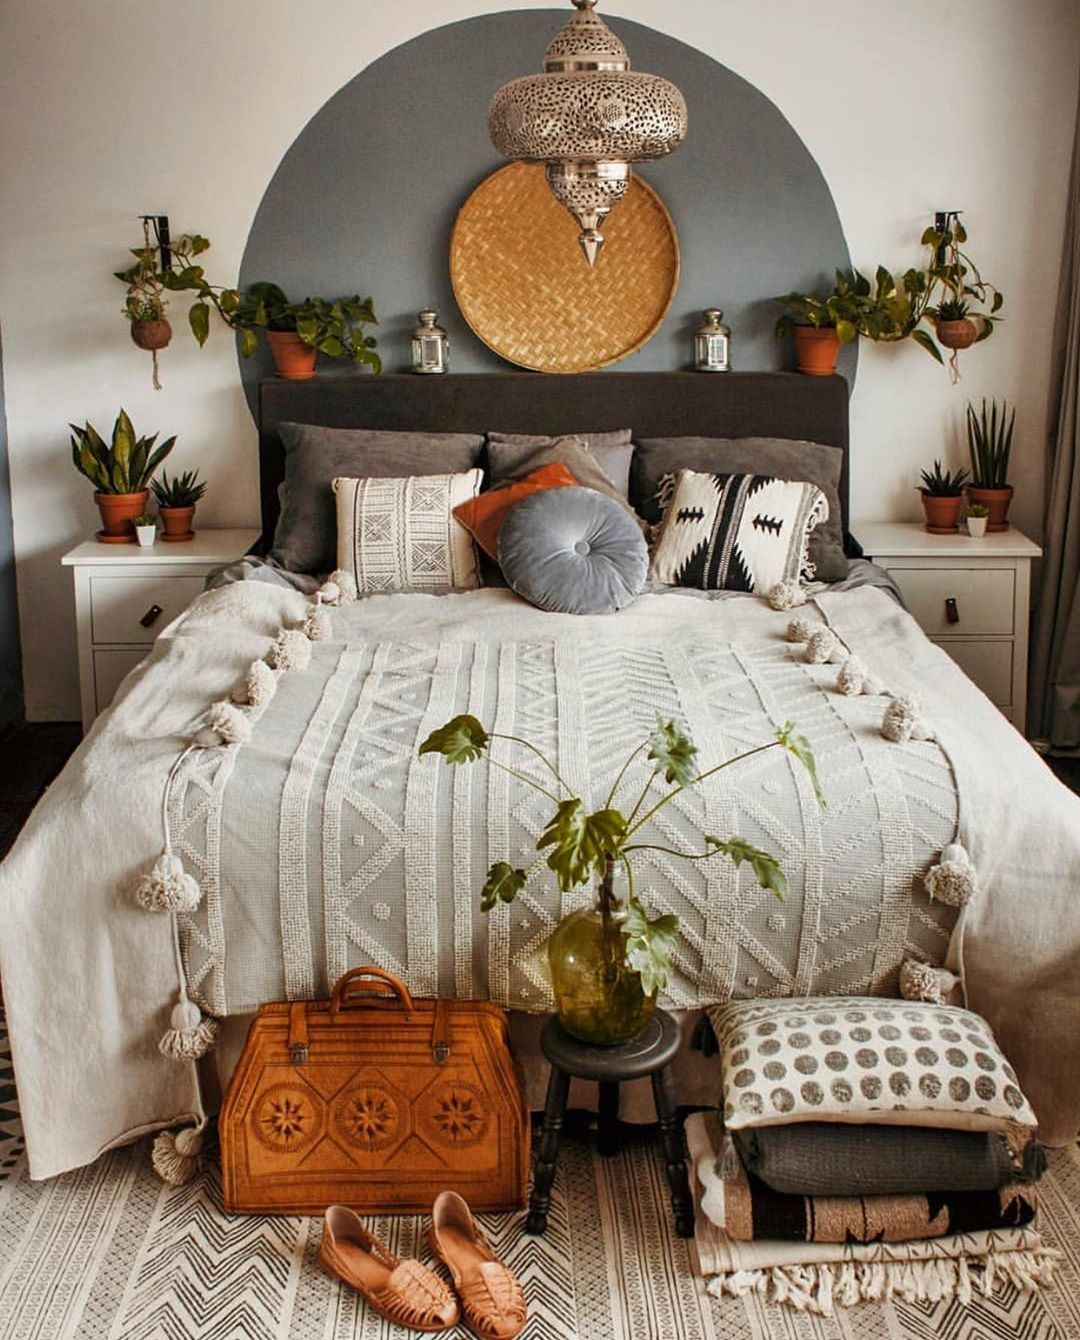 Enhance The Home Beauty With Bohemian Style Beds Home Bedroom Eclectic Bedroom Bedroom Design